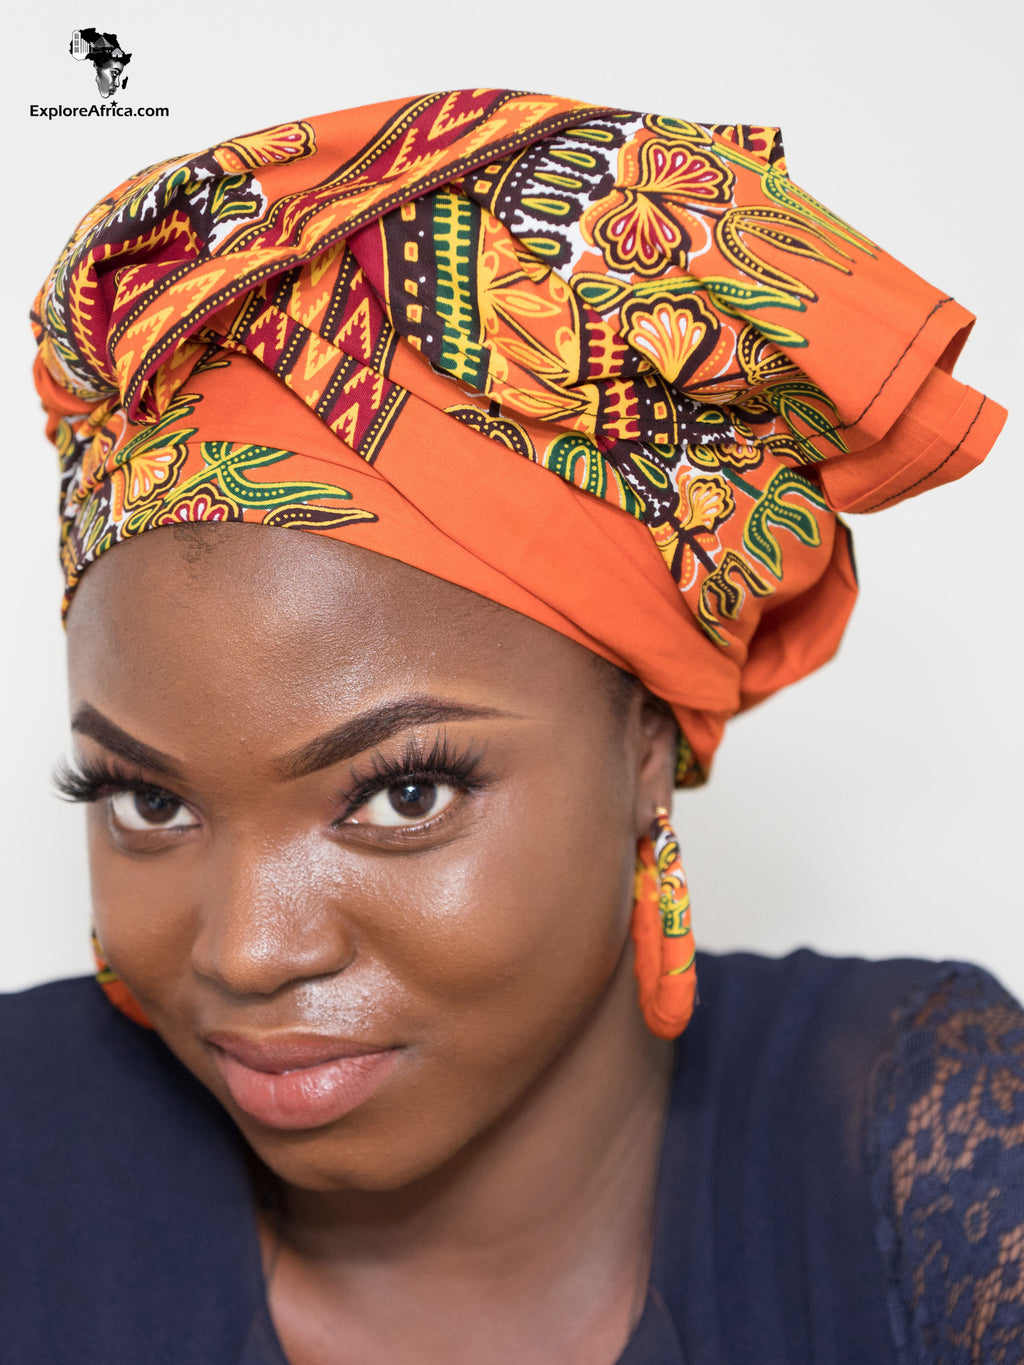 Explore African Clothing Women Head Wrap and Earrings